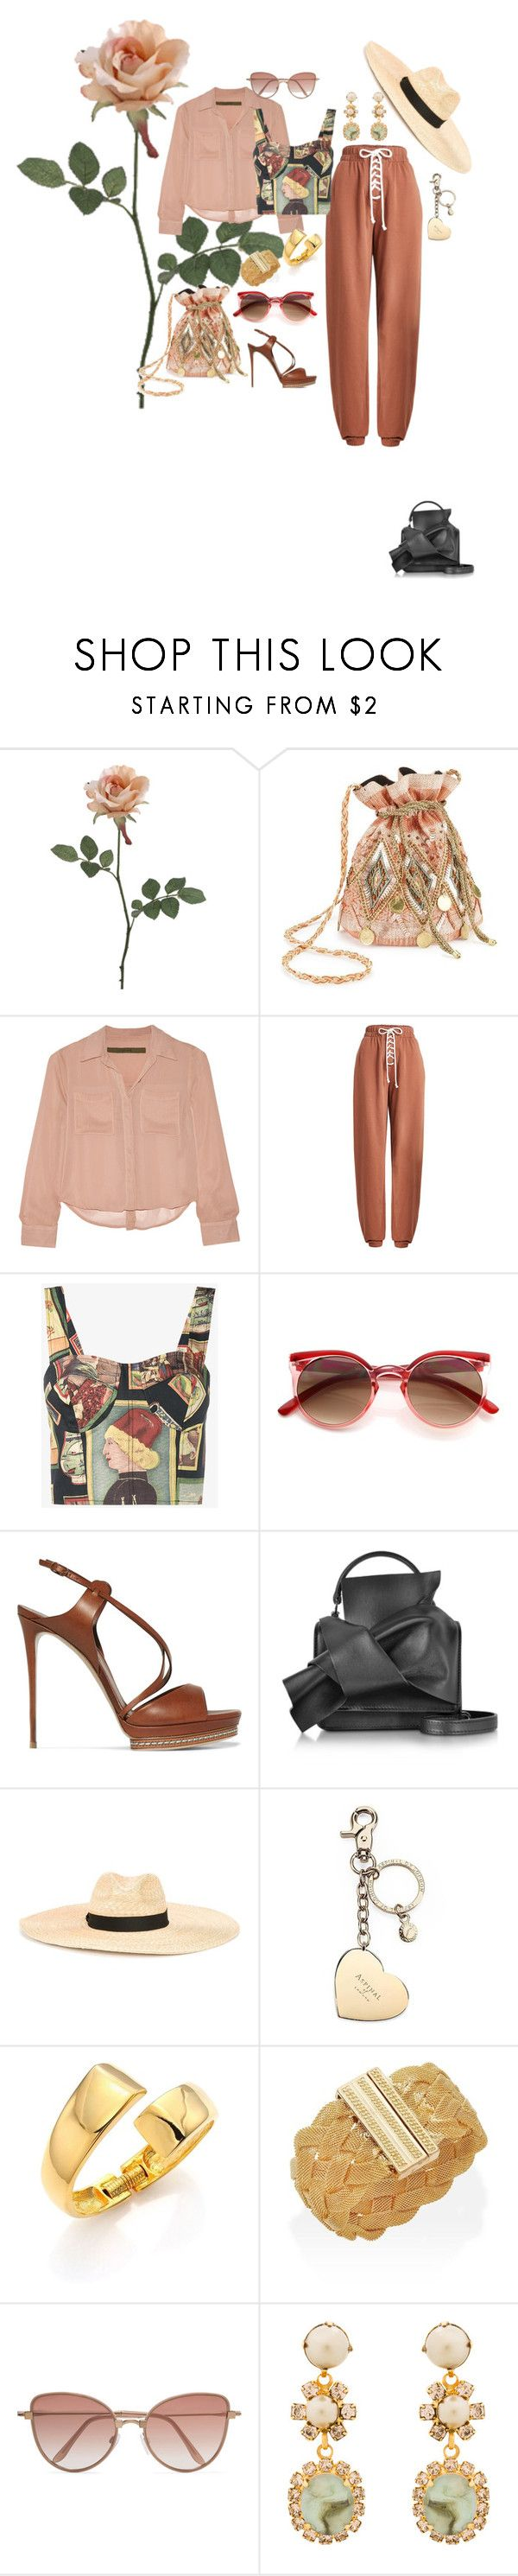 """BRUNCH!"" by hrhjustcuz ❤ liked on Polyvore featuring Miss Selfridge, Enza Costa, Puma, Simon Miller, Casadei, N°21, Dsquared2, Aspinal of London, Kenneth Jay Lane and Cutler and Gross"